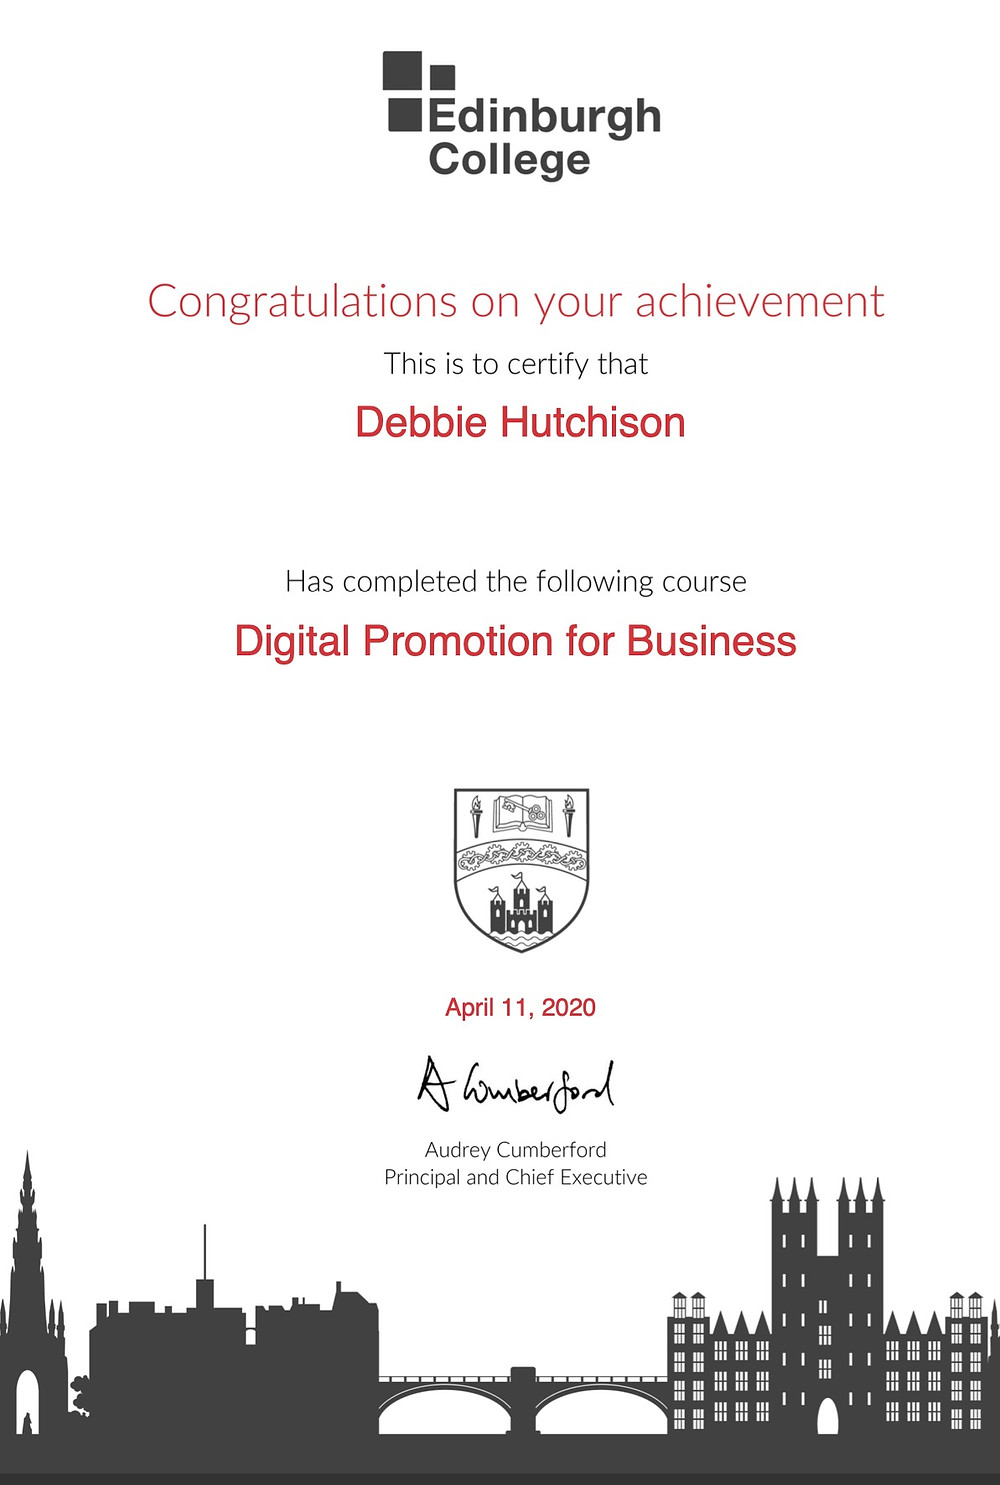 Debbie's certificate for the Digital Promotion for Business course at Edinburgh College